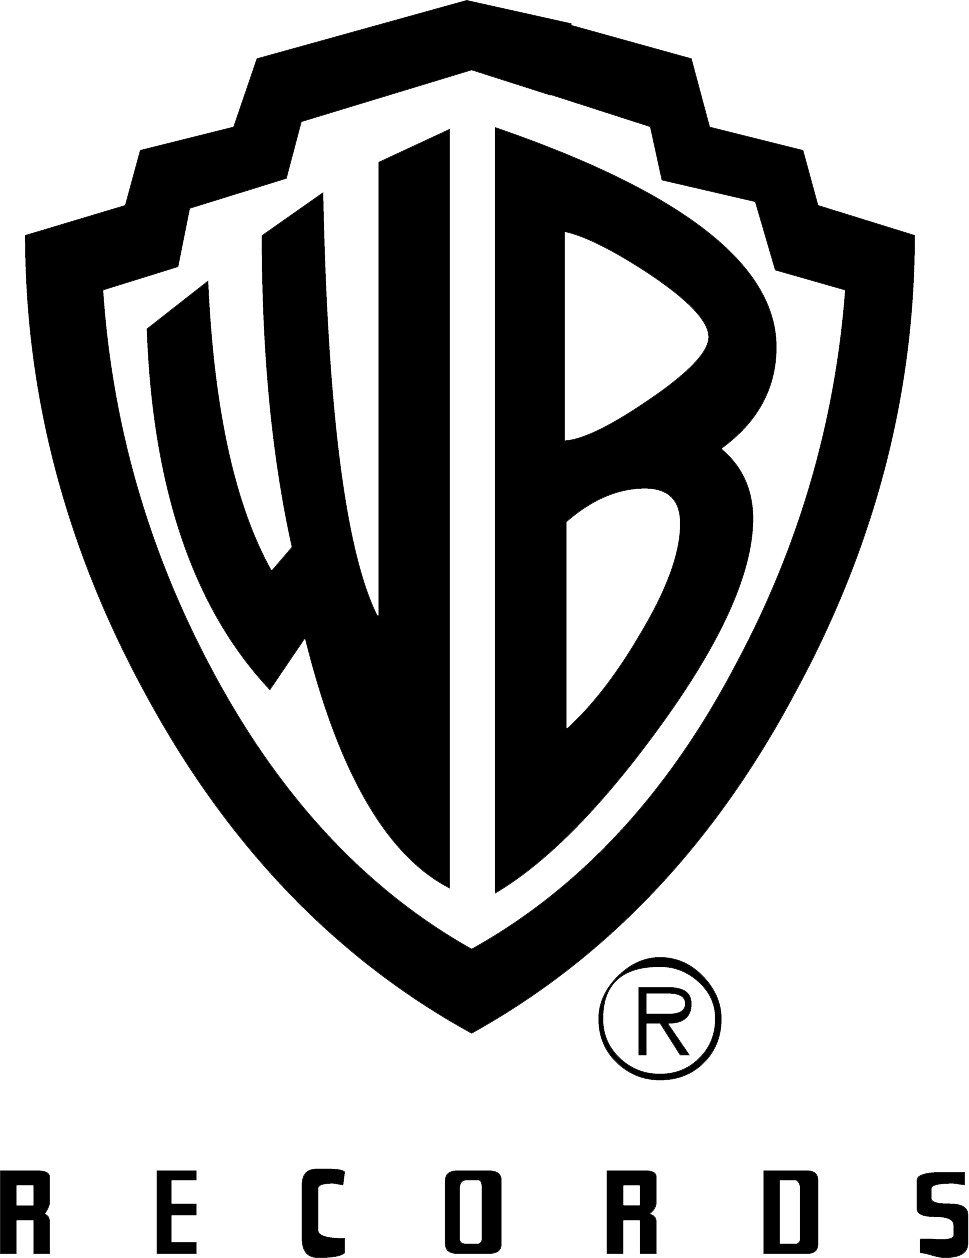 WARNER BROS RECORDS.jpg